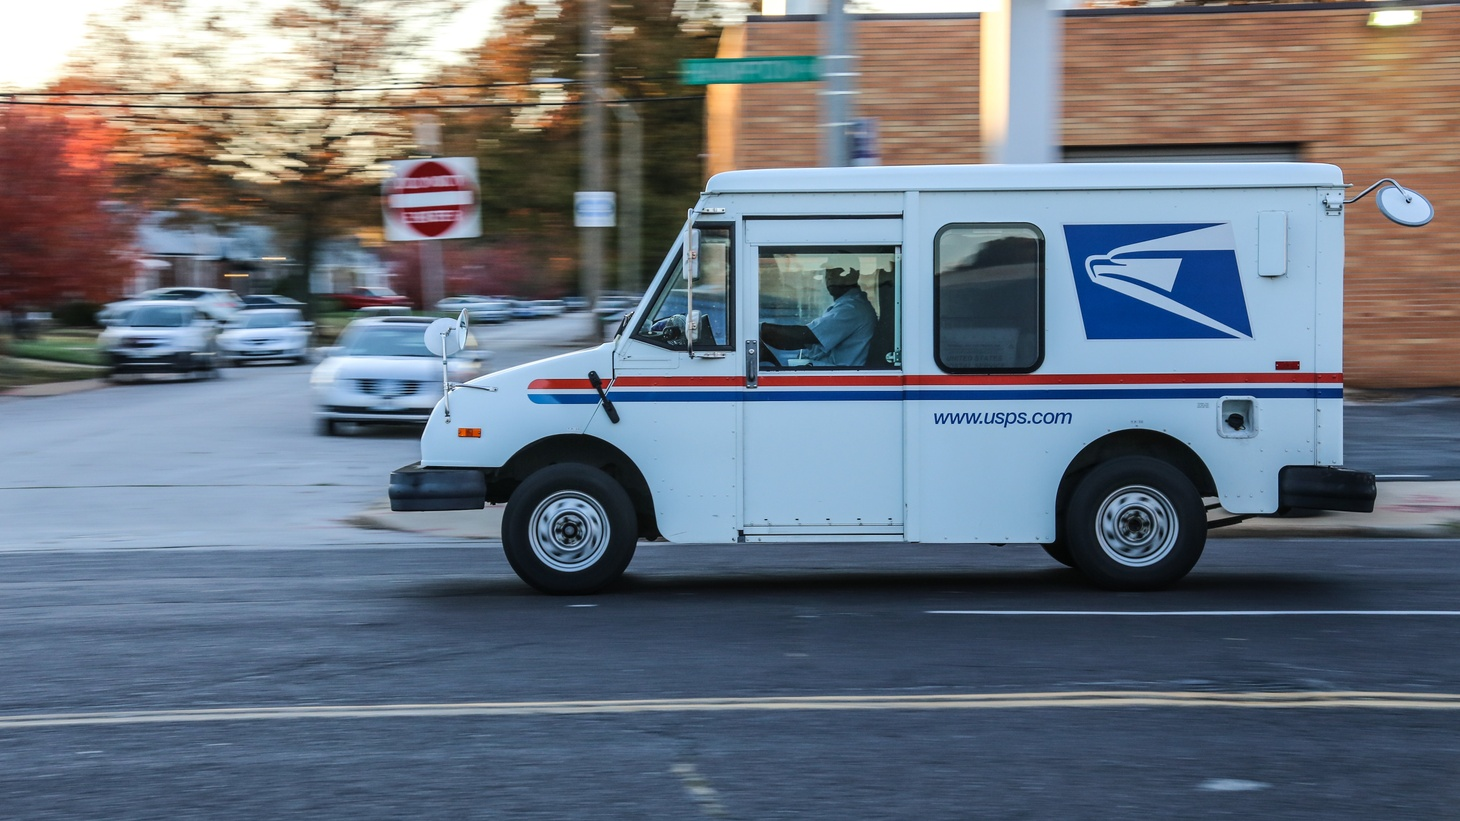 The U.S. Postal Service has undergone a number of changes since Louis DeJoy became the new postmaster general.